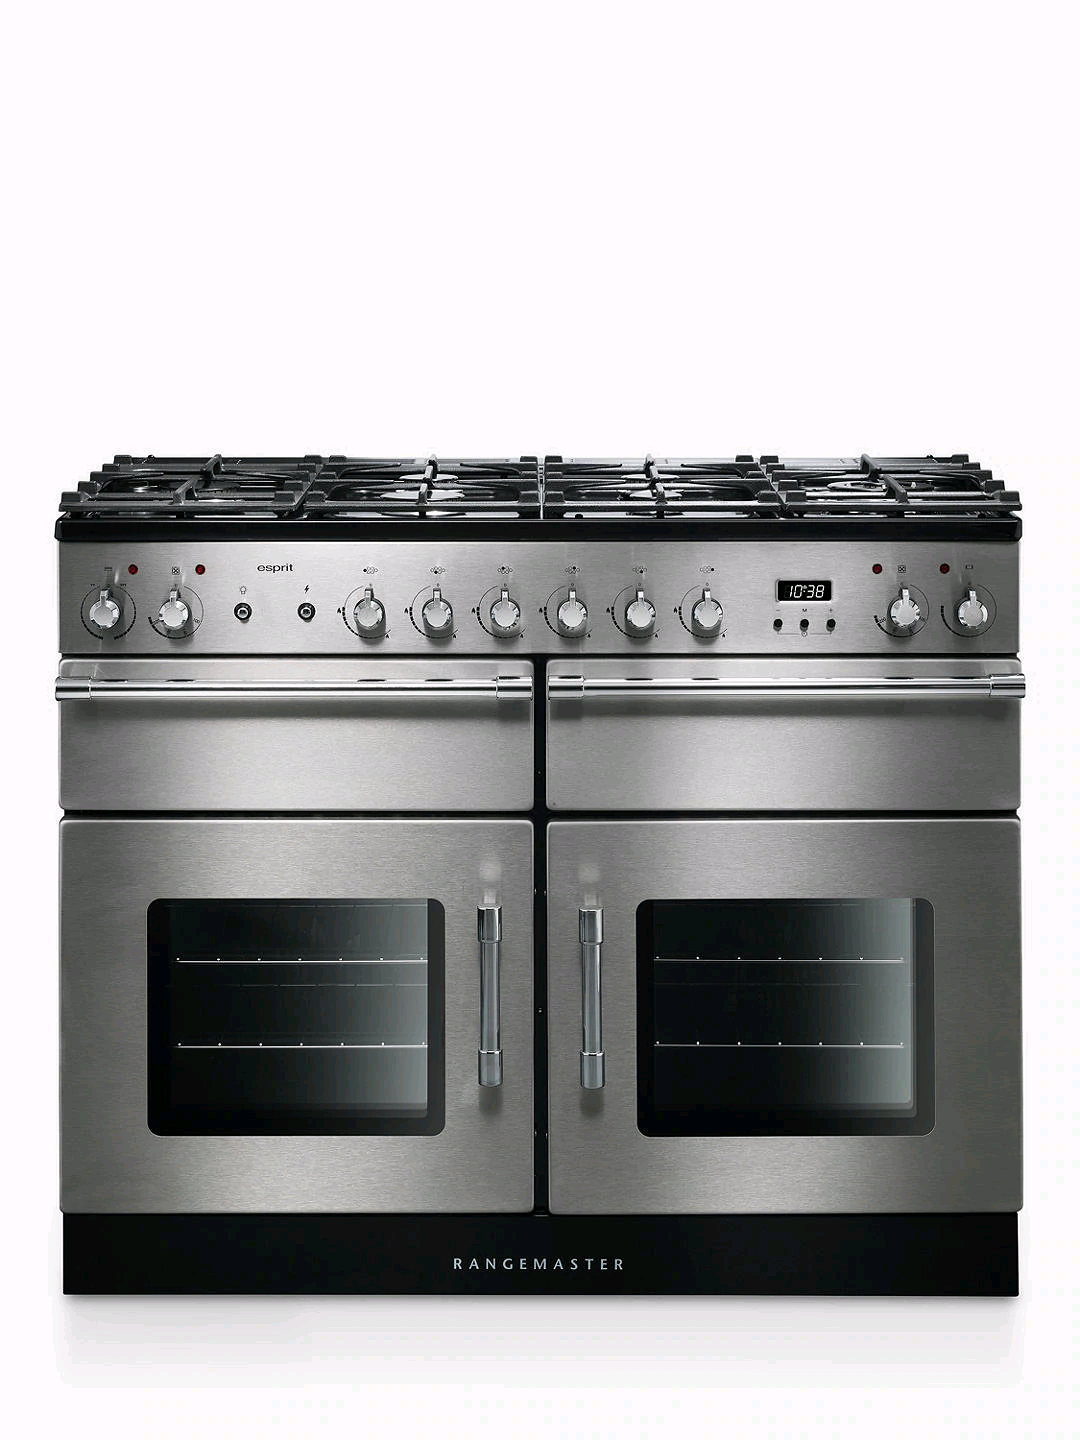 Rangemaster Esprit 110cm Electric Range Cooker Dual Fuel Stainless Steel Chrome